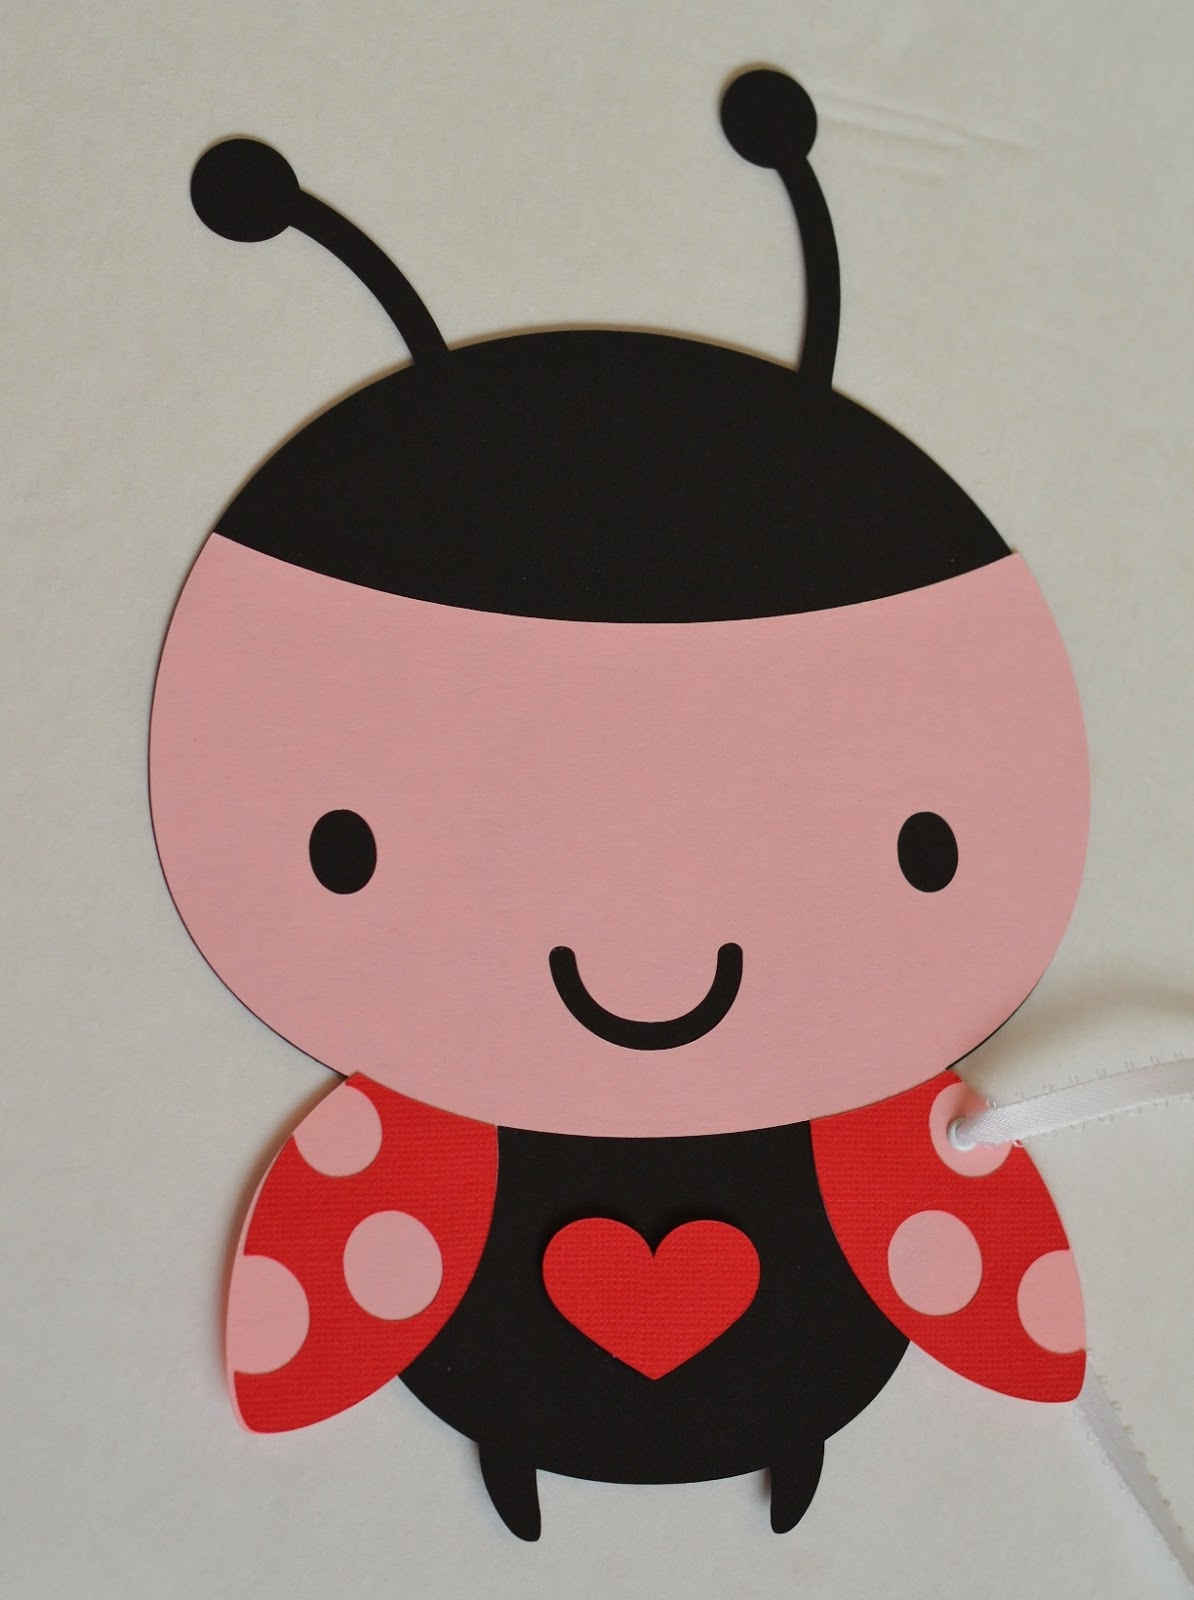 Jingvitations October 2012 – Ladybug Birthday Cards